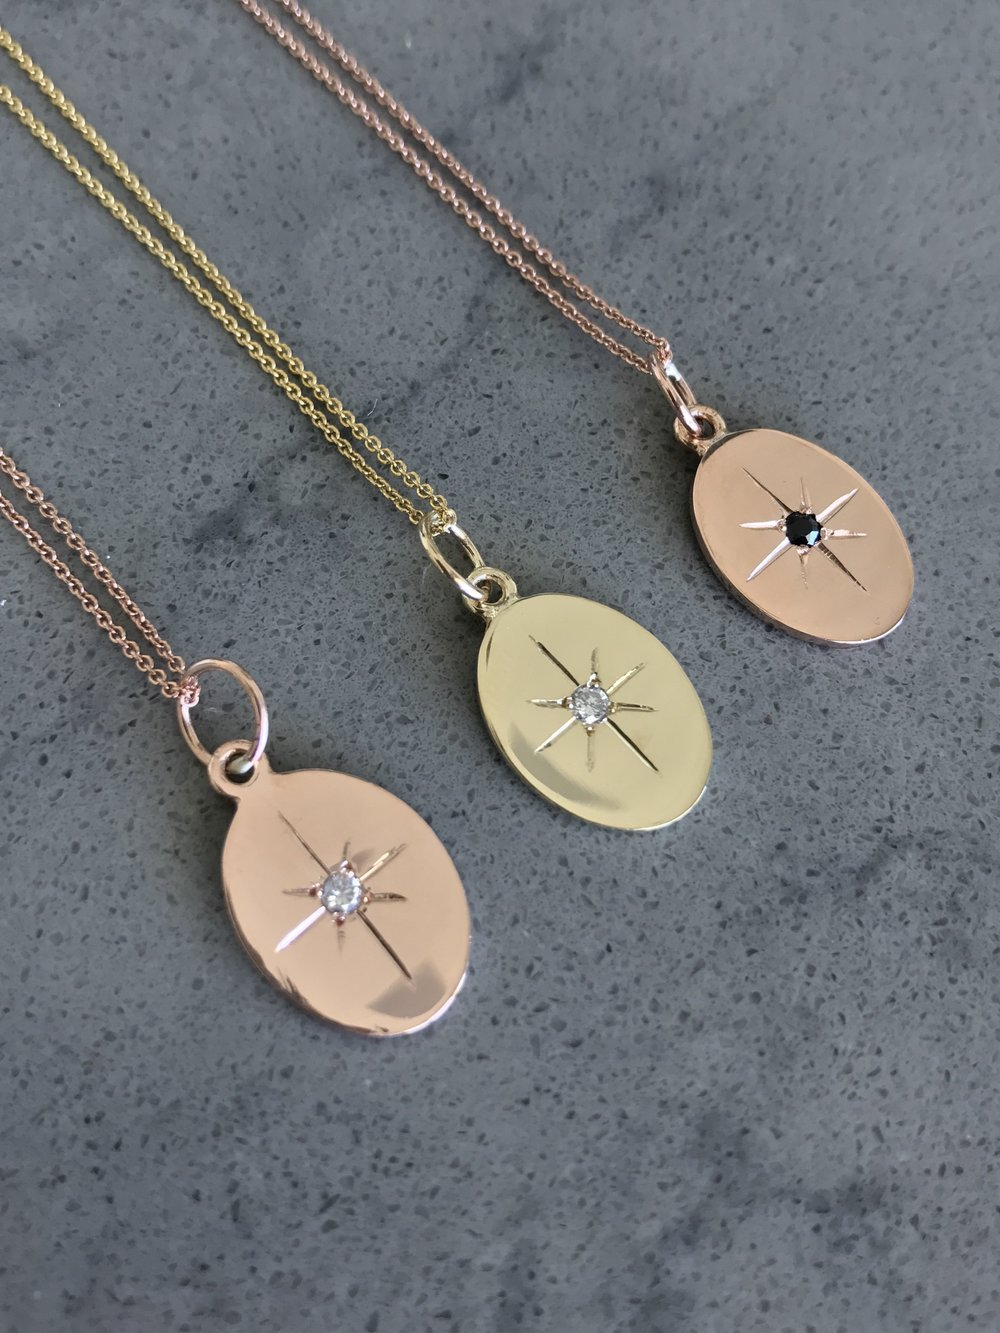 women pendants from dark lighting for chains the necklaces long necklace vintage color jewelry pendant item glow glowing in